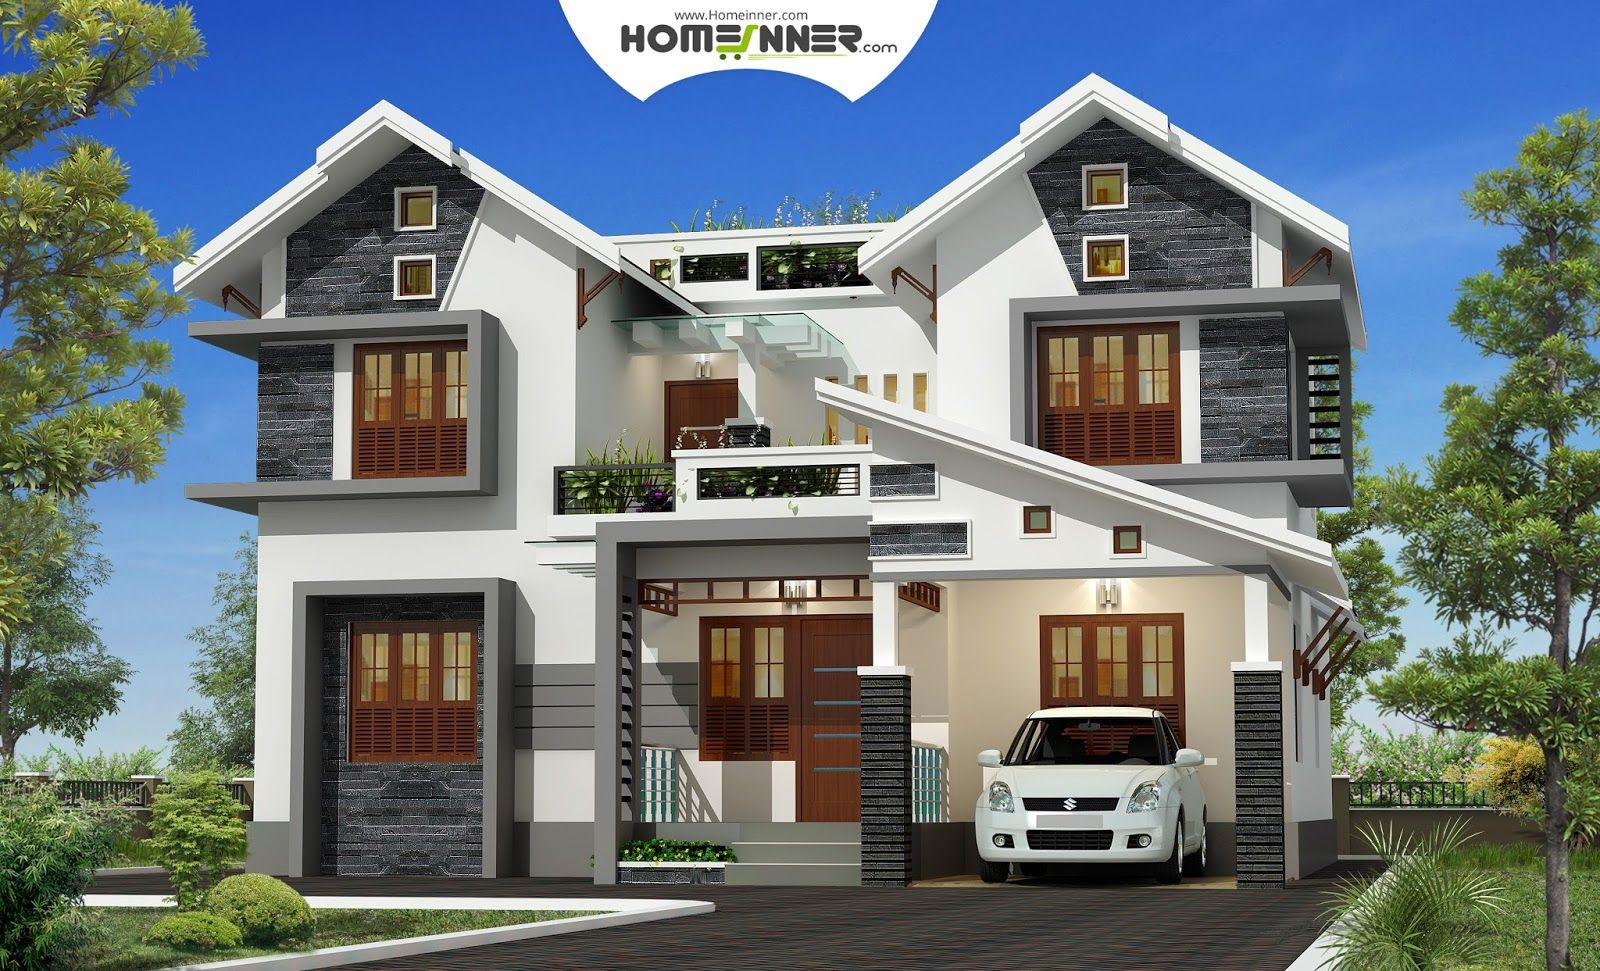 Amazing About The Home Design: This Beautiful Home Design Has The Following  Specifications Total A.